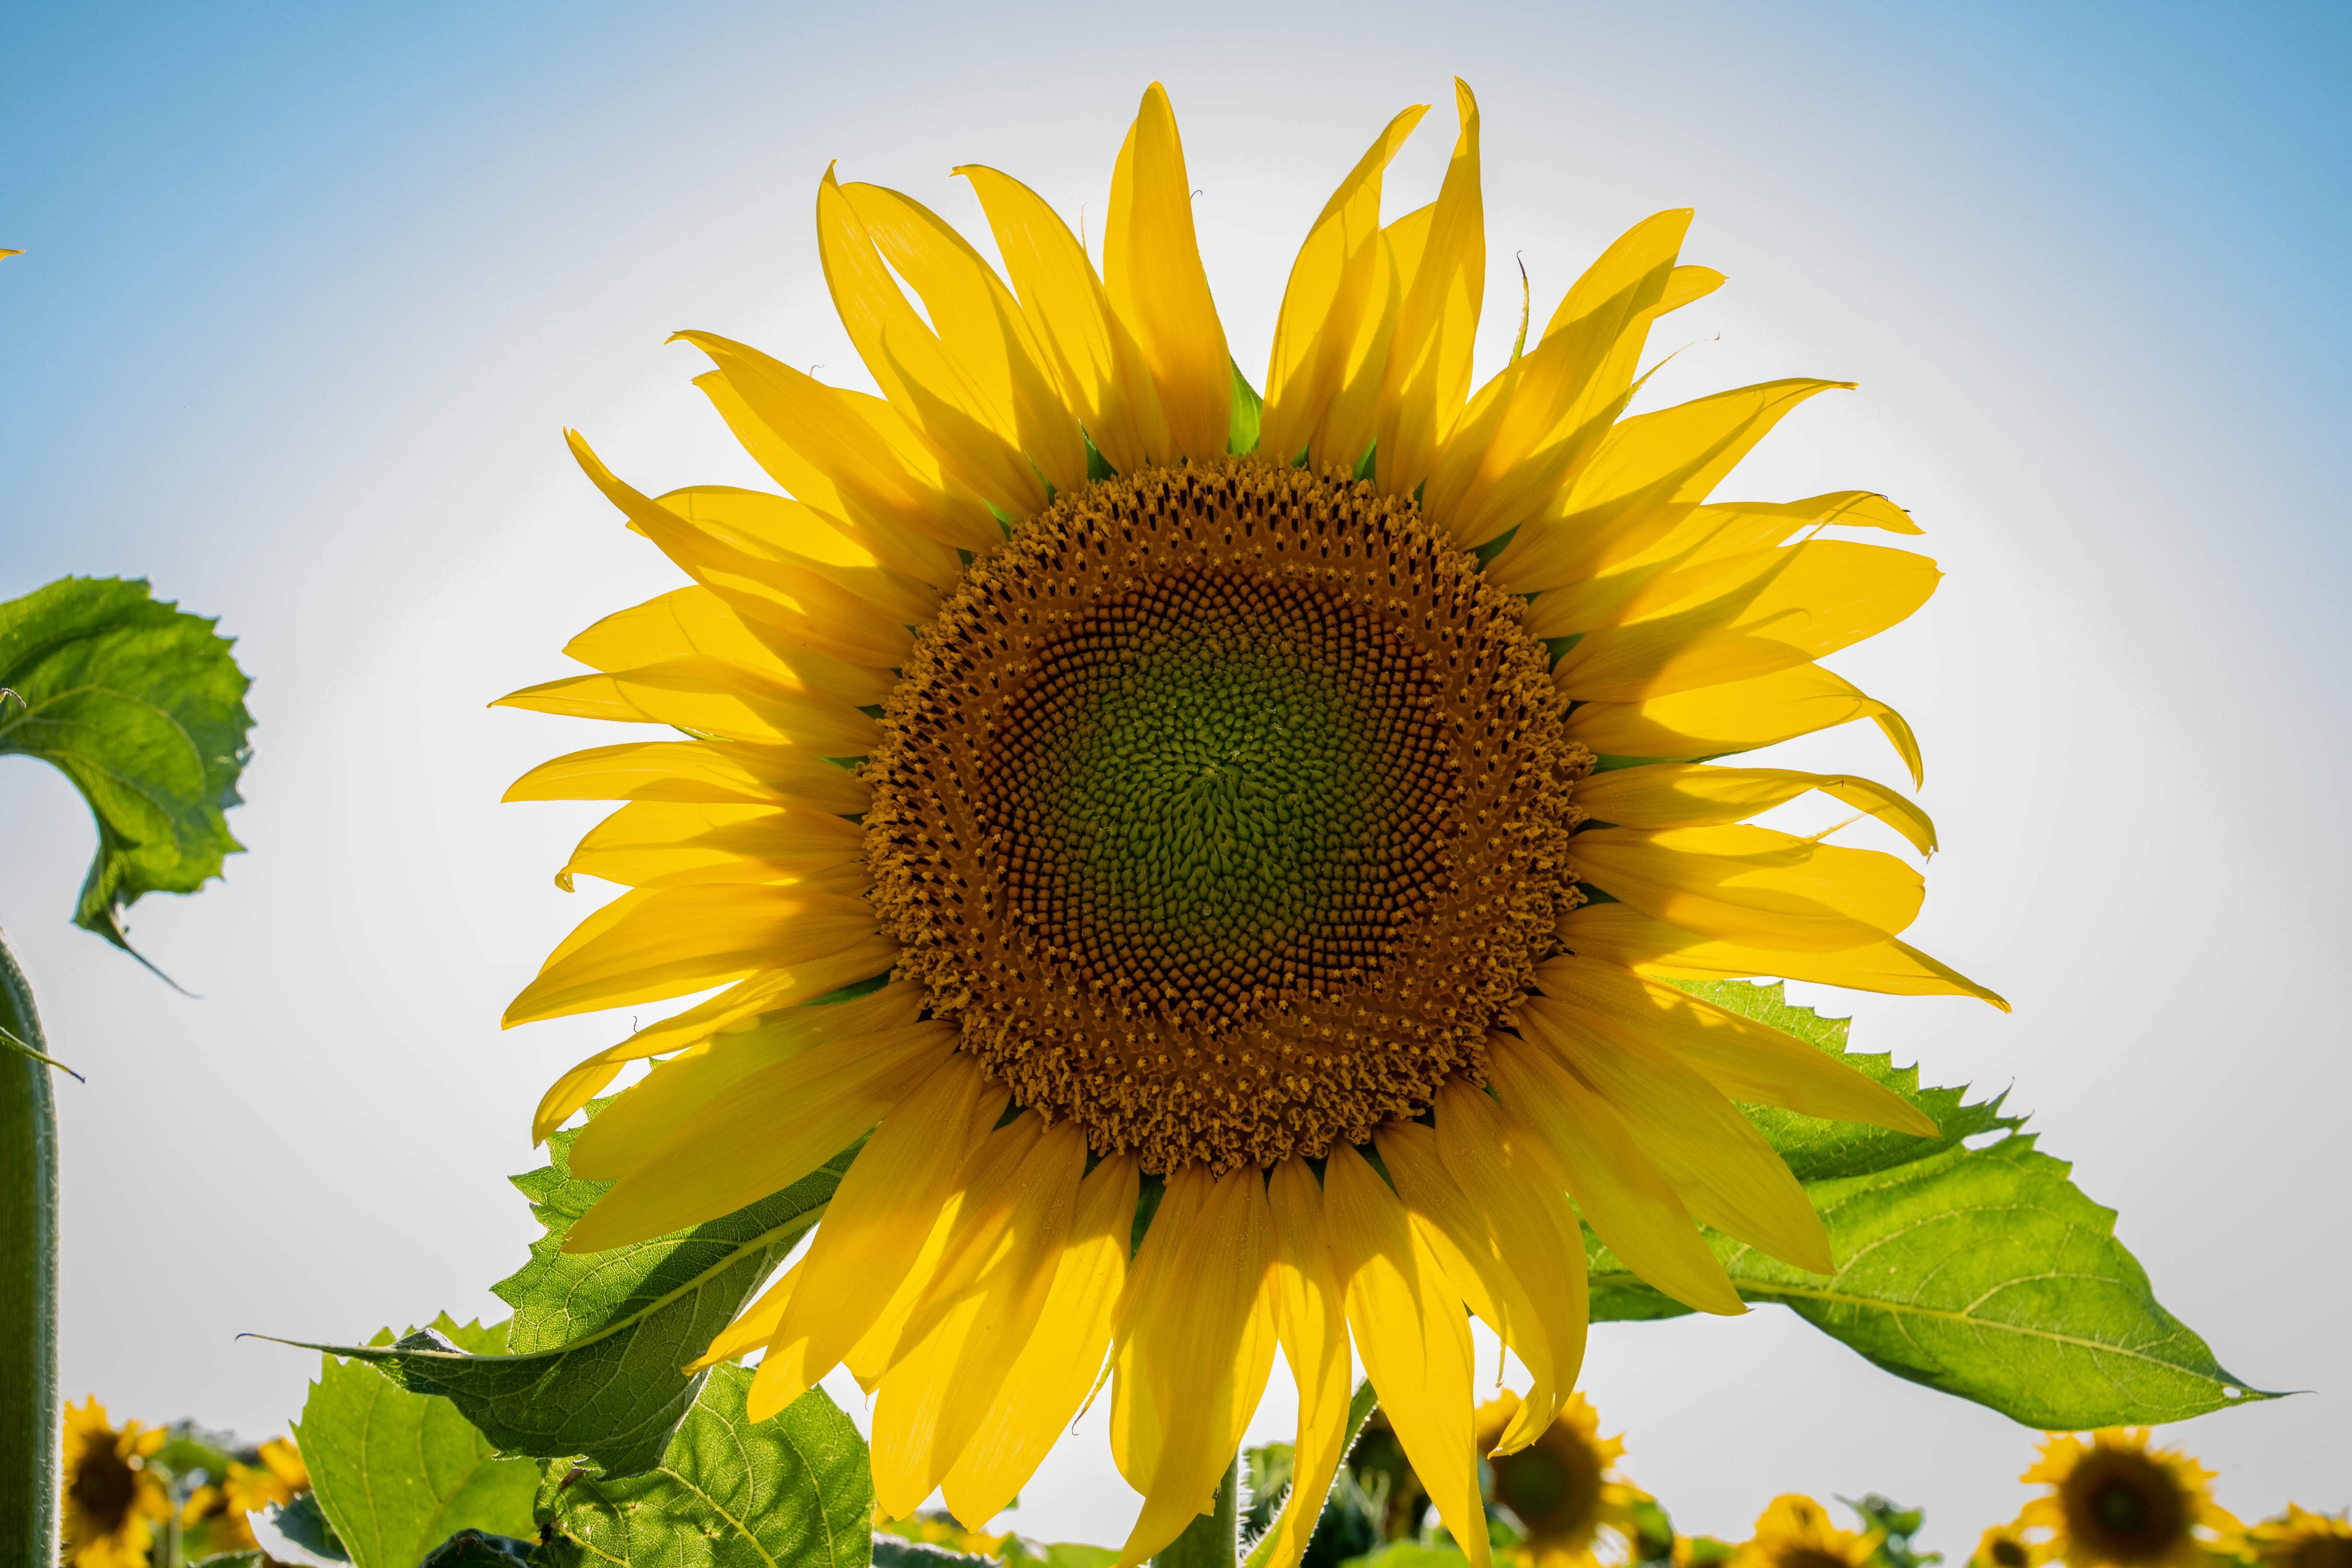 Sunflower backlit by the sun.